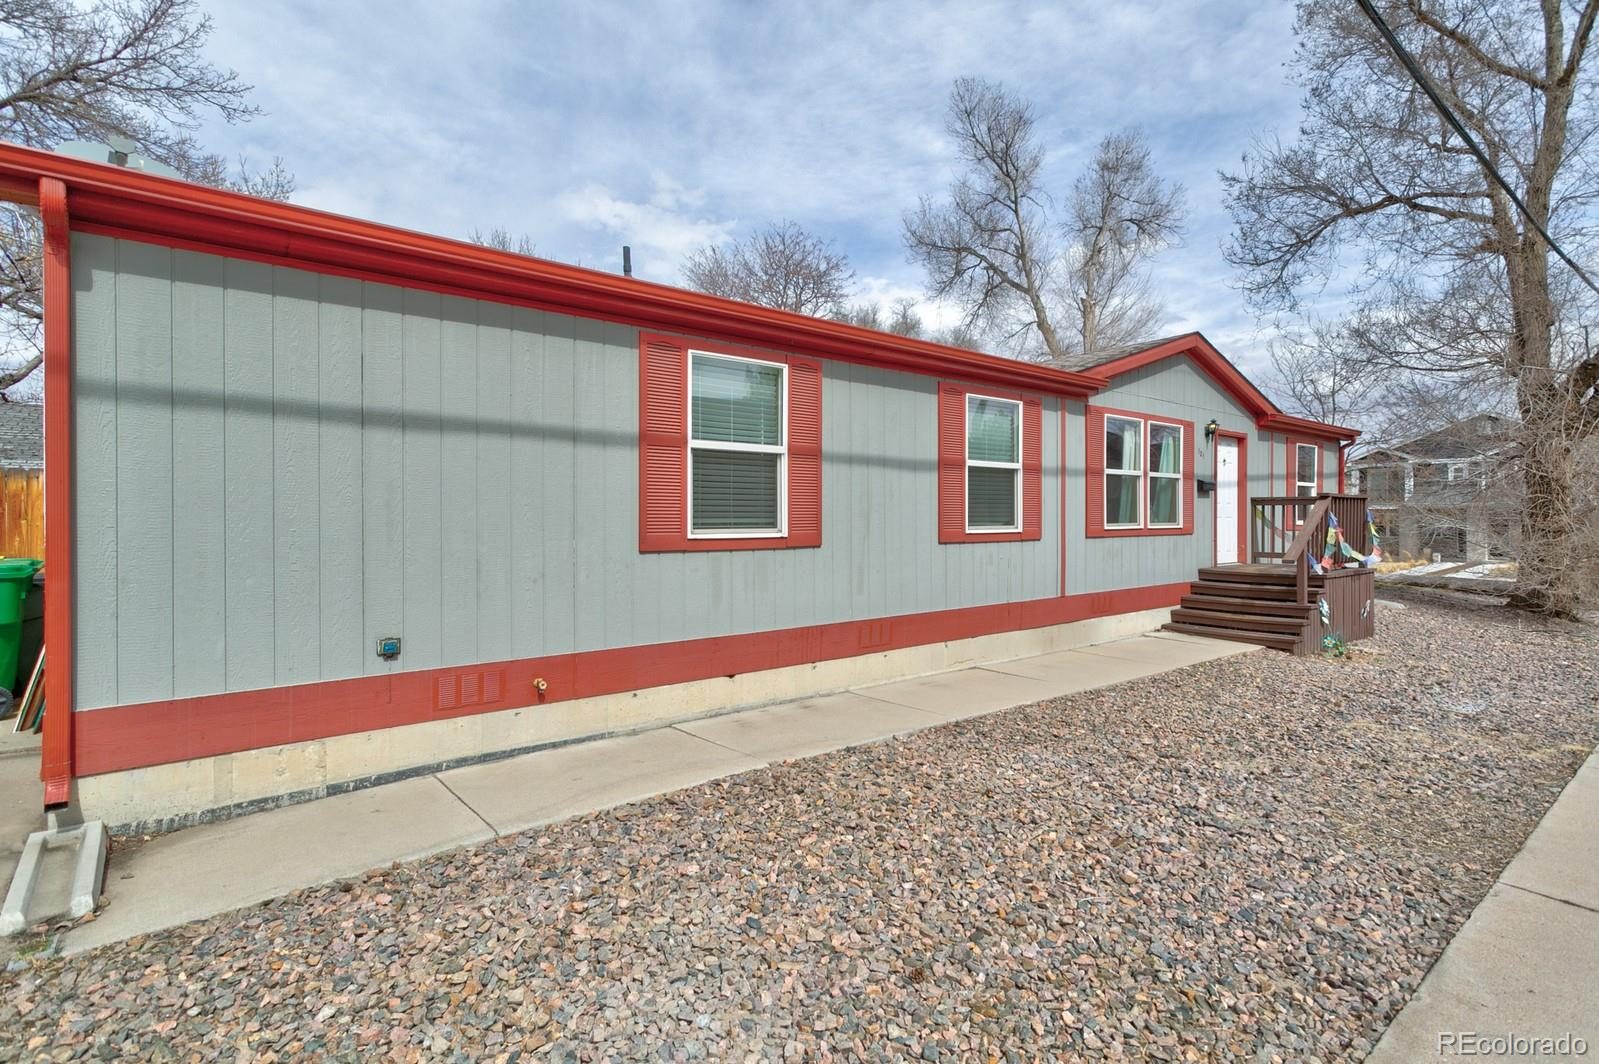 MLS# 2323093 - 2 - 101 W Layton Avenue, Englewood, CO 80110